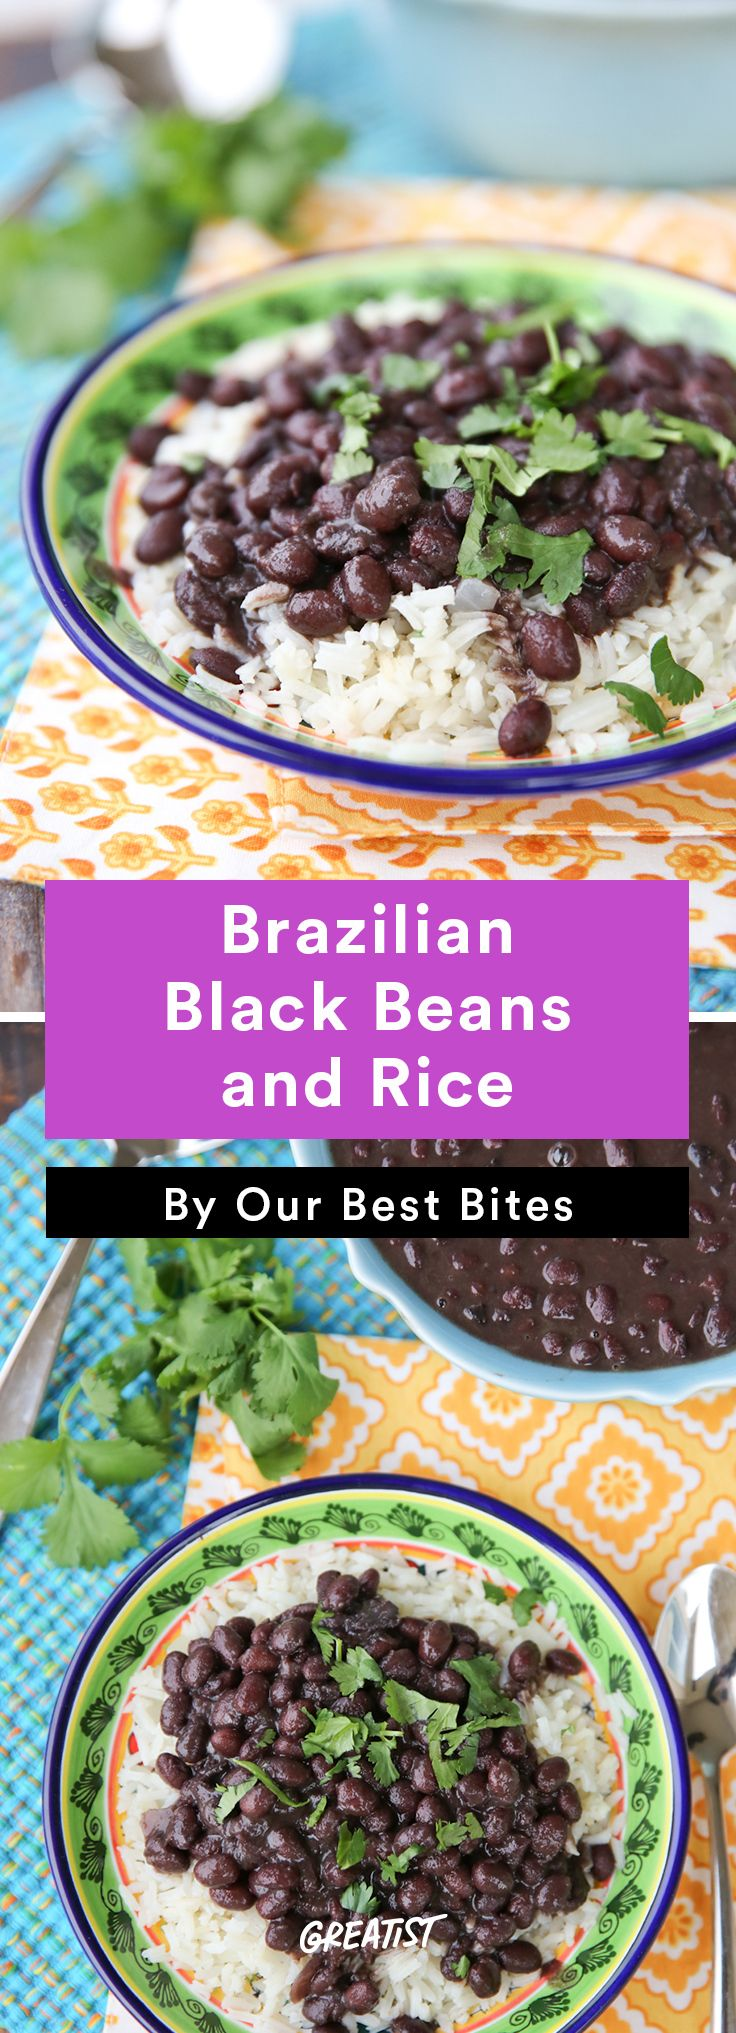 7. Brazilian Black Beans and Rice #healthy #Brazilian #recipes http://greatist.com/eat/brazilian-recipes-that-are-surefire-winners